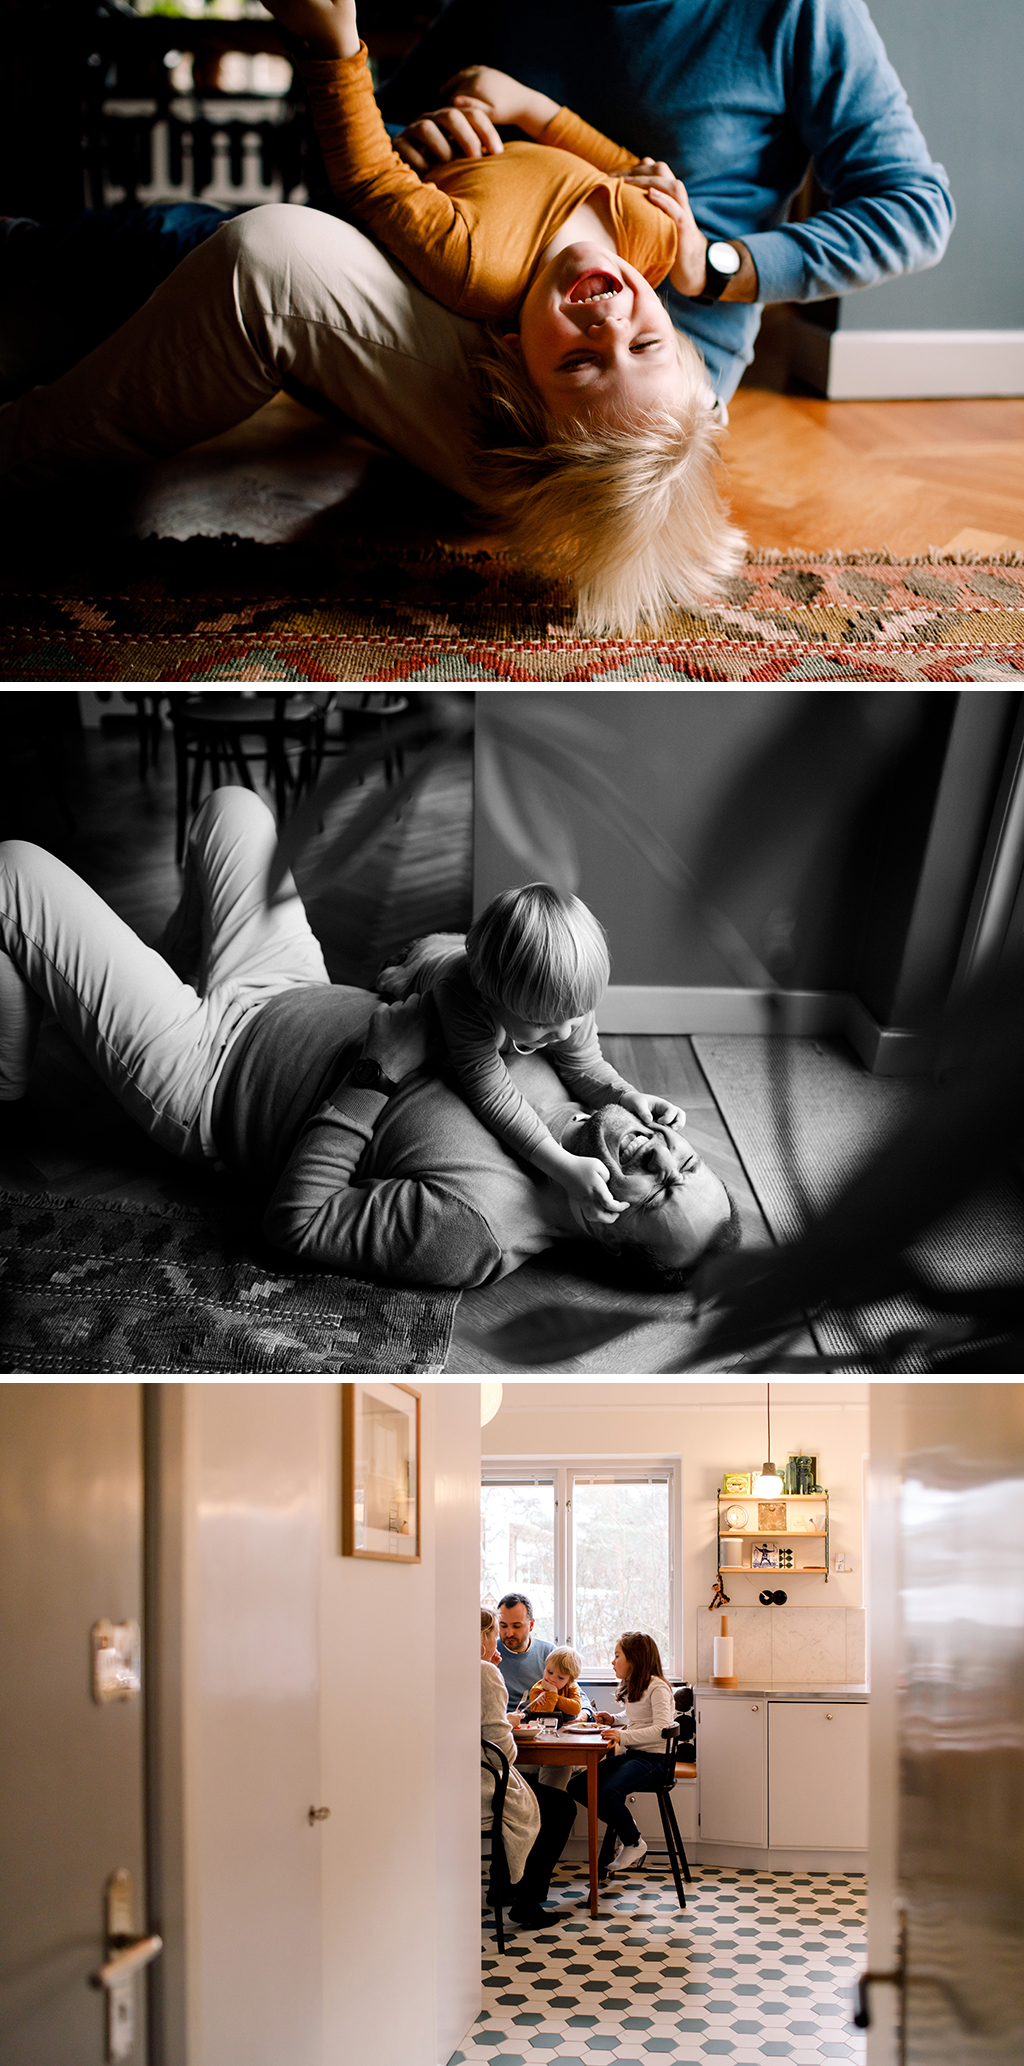 Lifestylefotografering_Familjefotografering_hemma_day-in-the-life_11.jpg